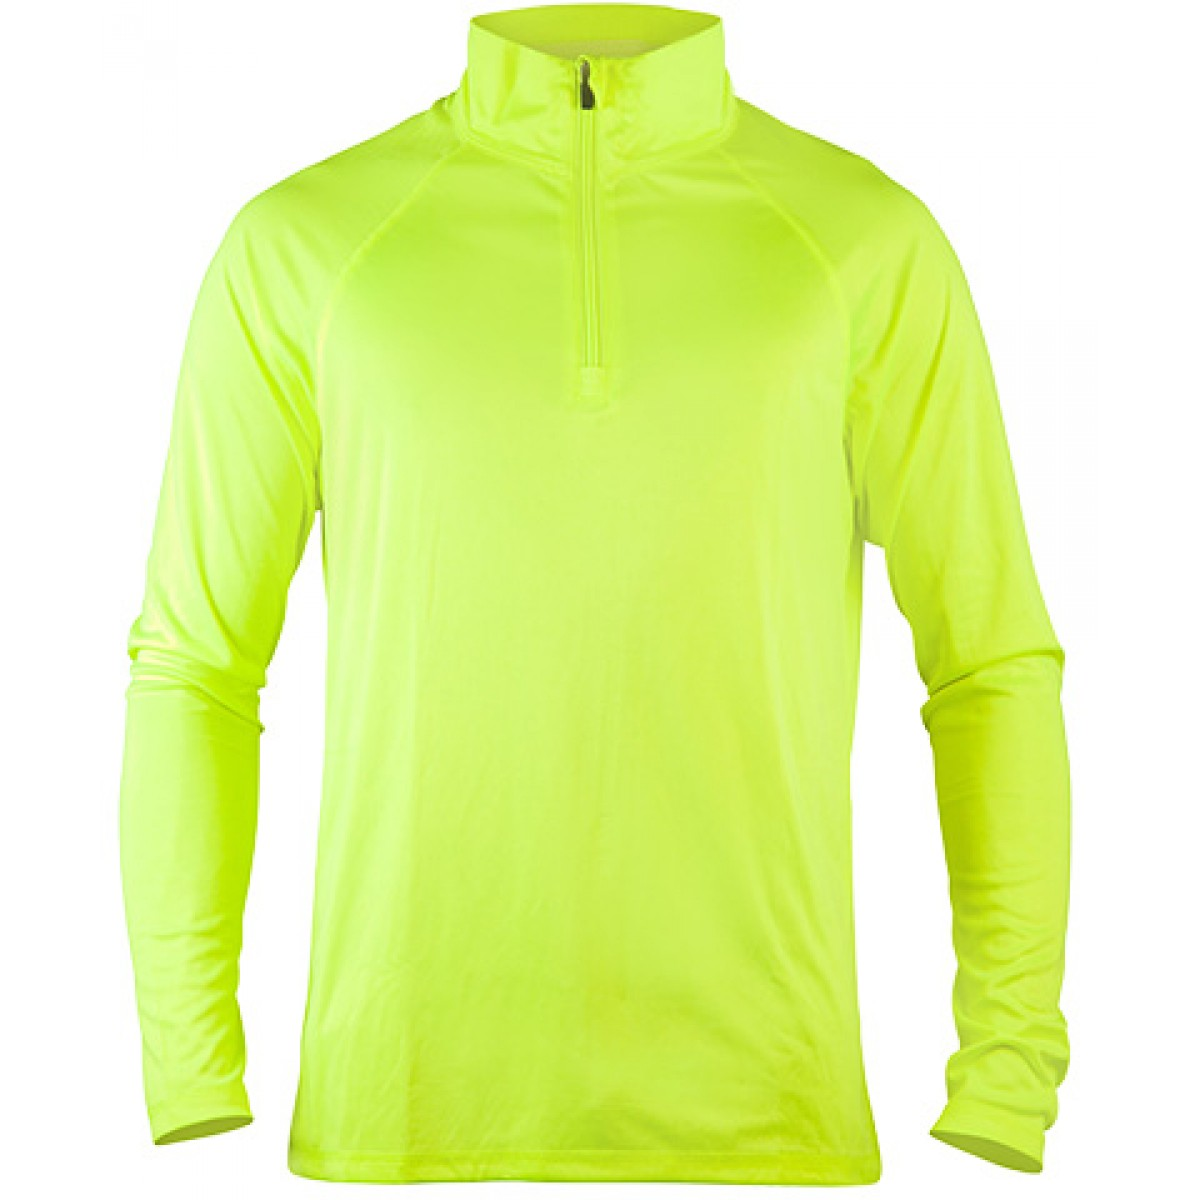 Men's Quarter-Zip Lightweight Pullover-Neon Green-XL